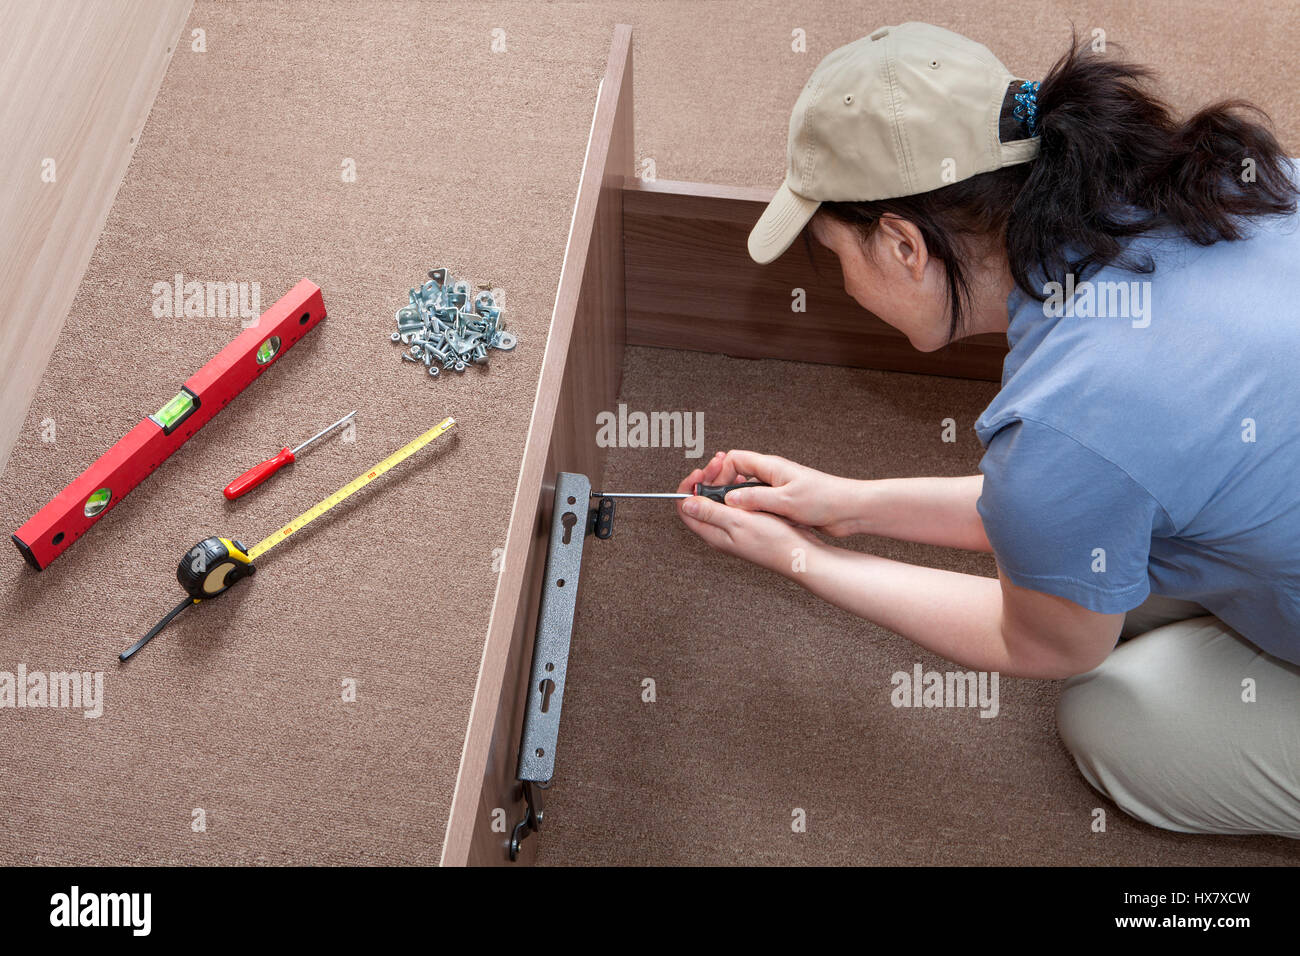 Self Assembling Furniture At Home, Women Putting Together Self Assembly  Furniture.